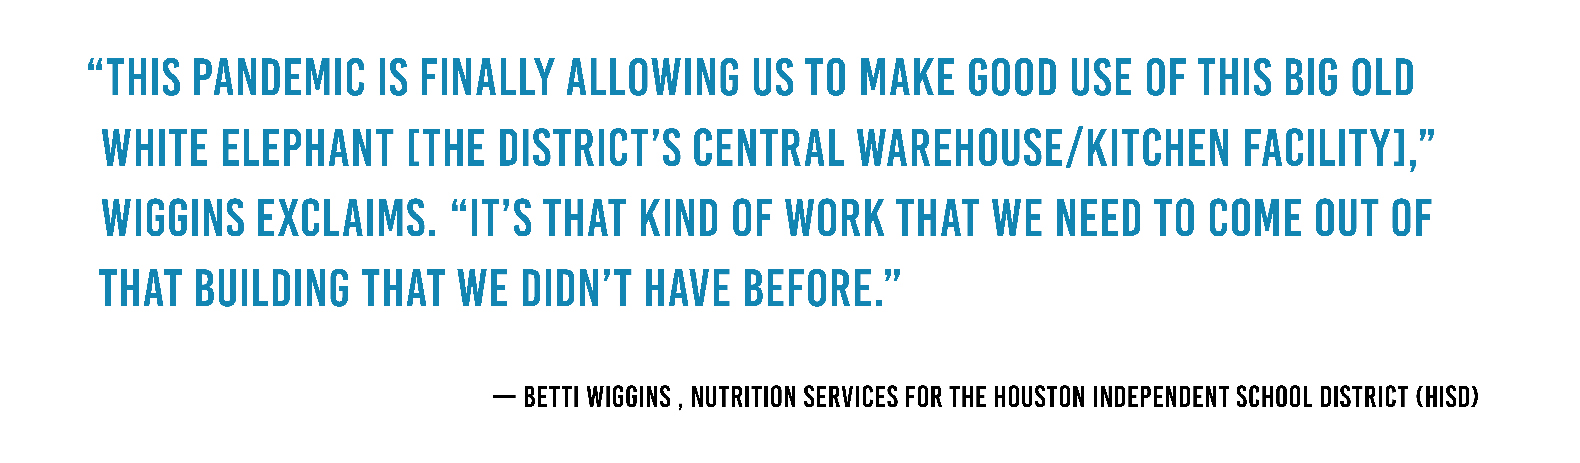 Betti Wiggins , Nutrition Services for the Houston Independent School District3.jpg